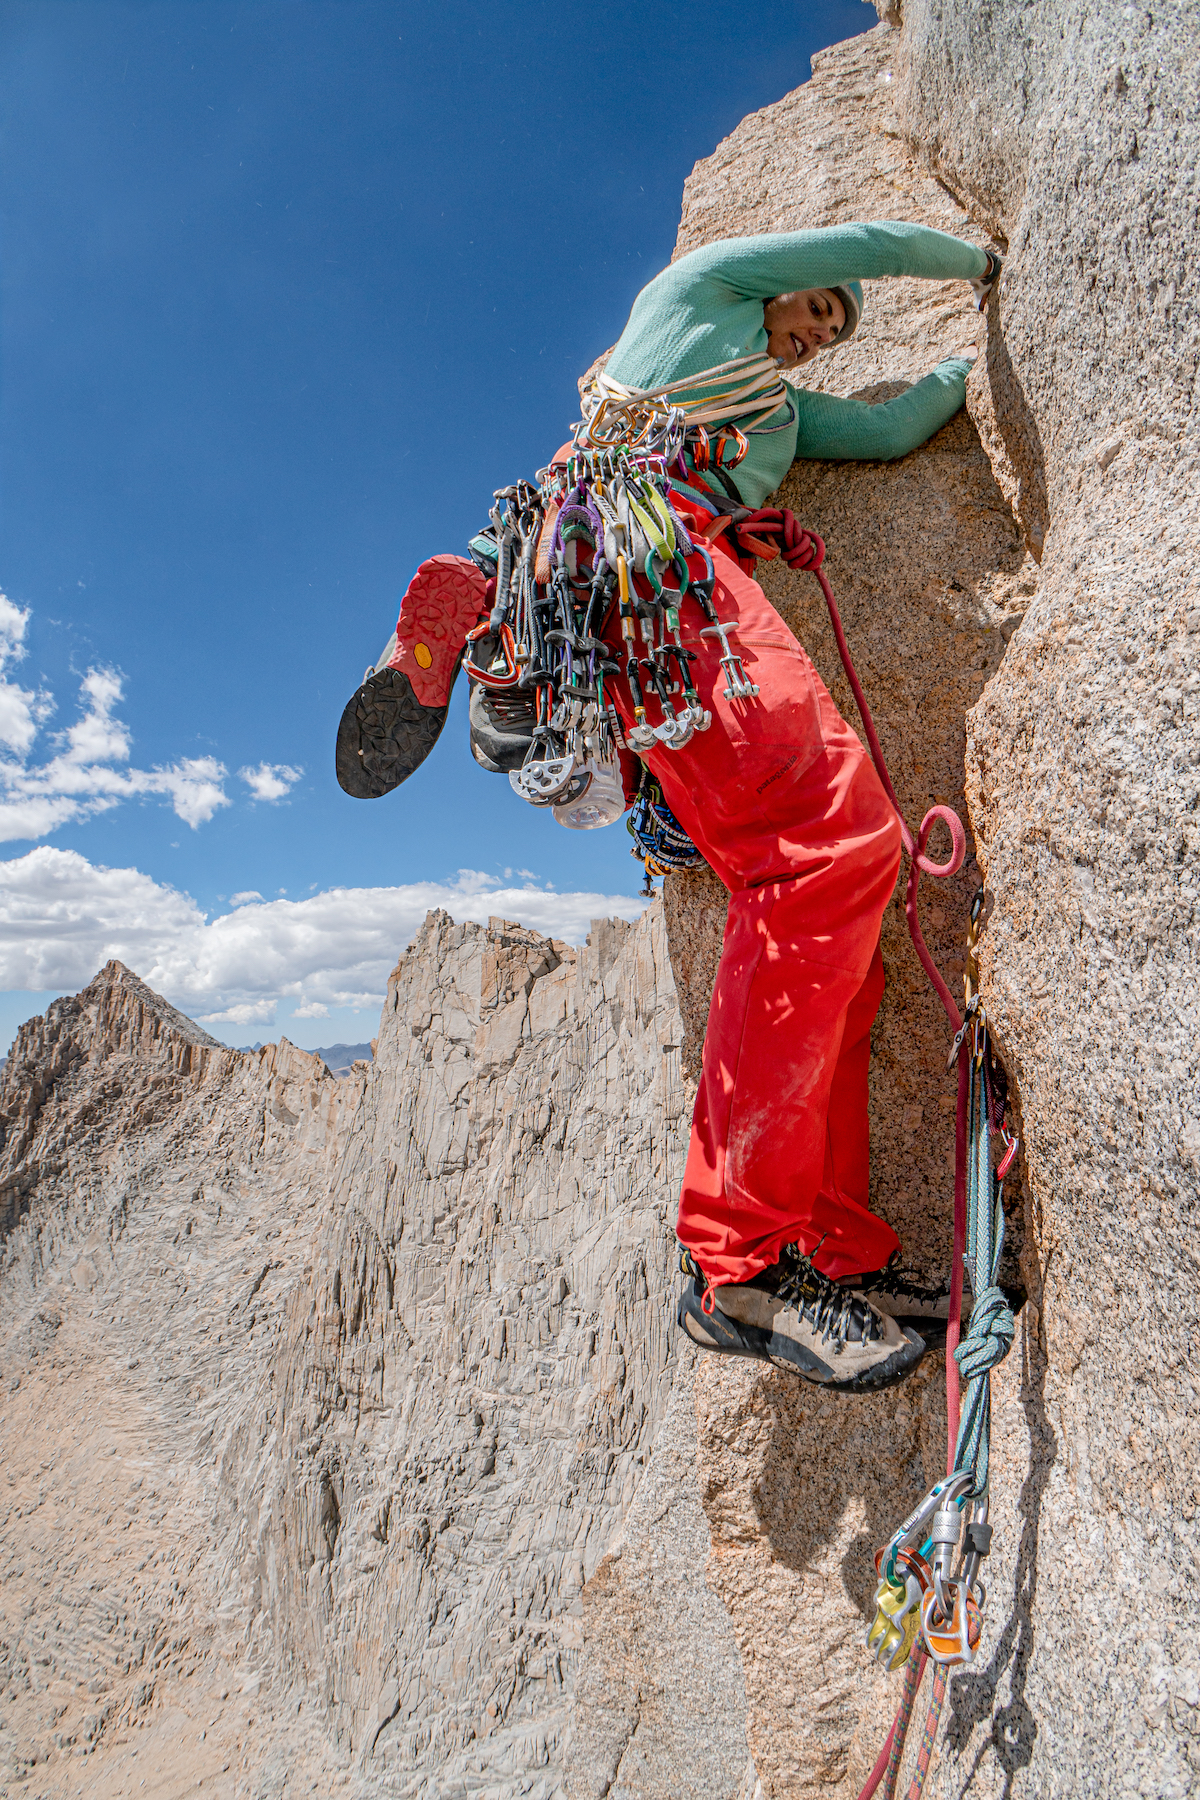 With a light rack of Revolutions and a cool breeze, Jane Jackson jams for joy on the West face of Mt. Russell, California. [Photo] Tad McCrea